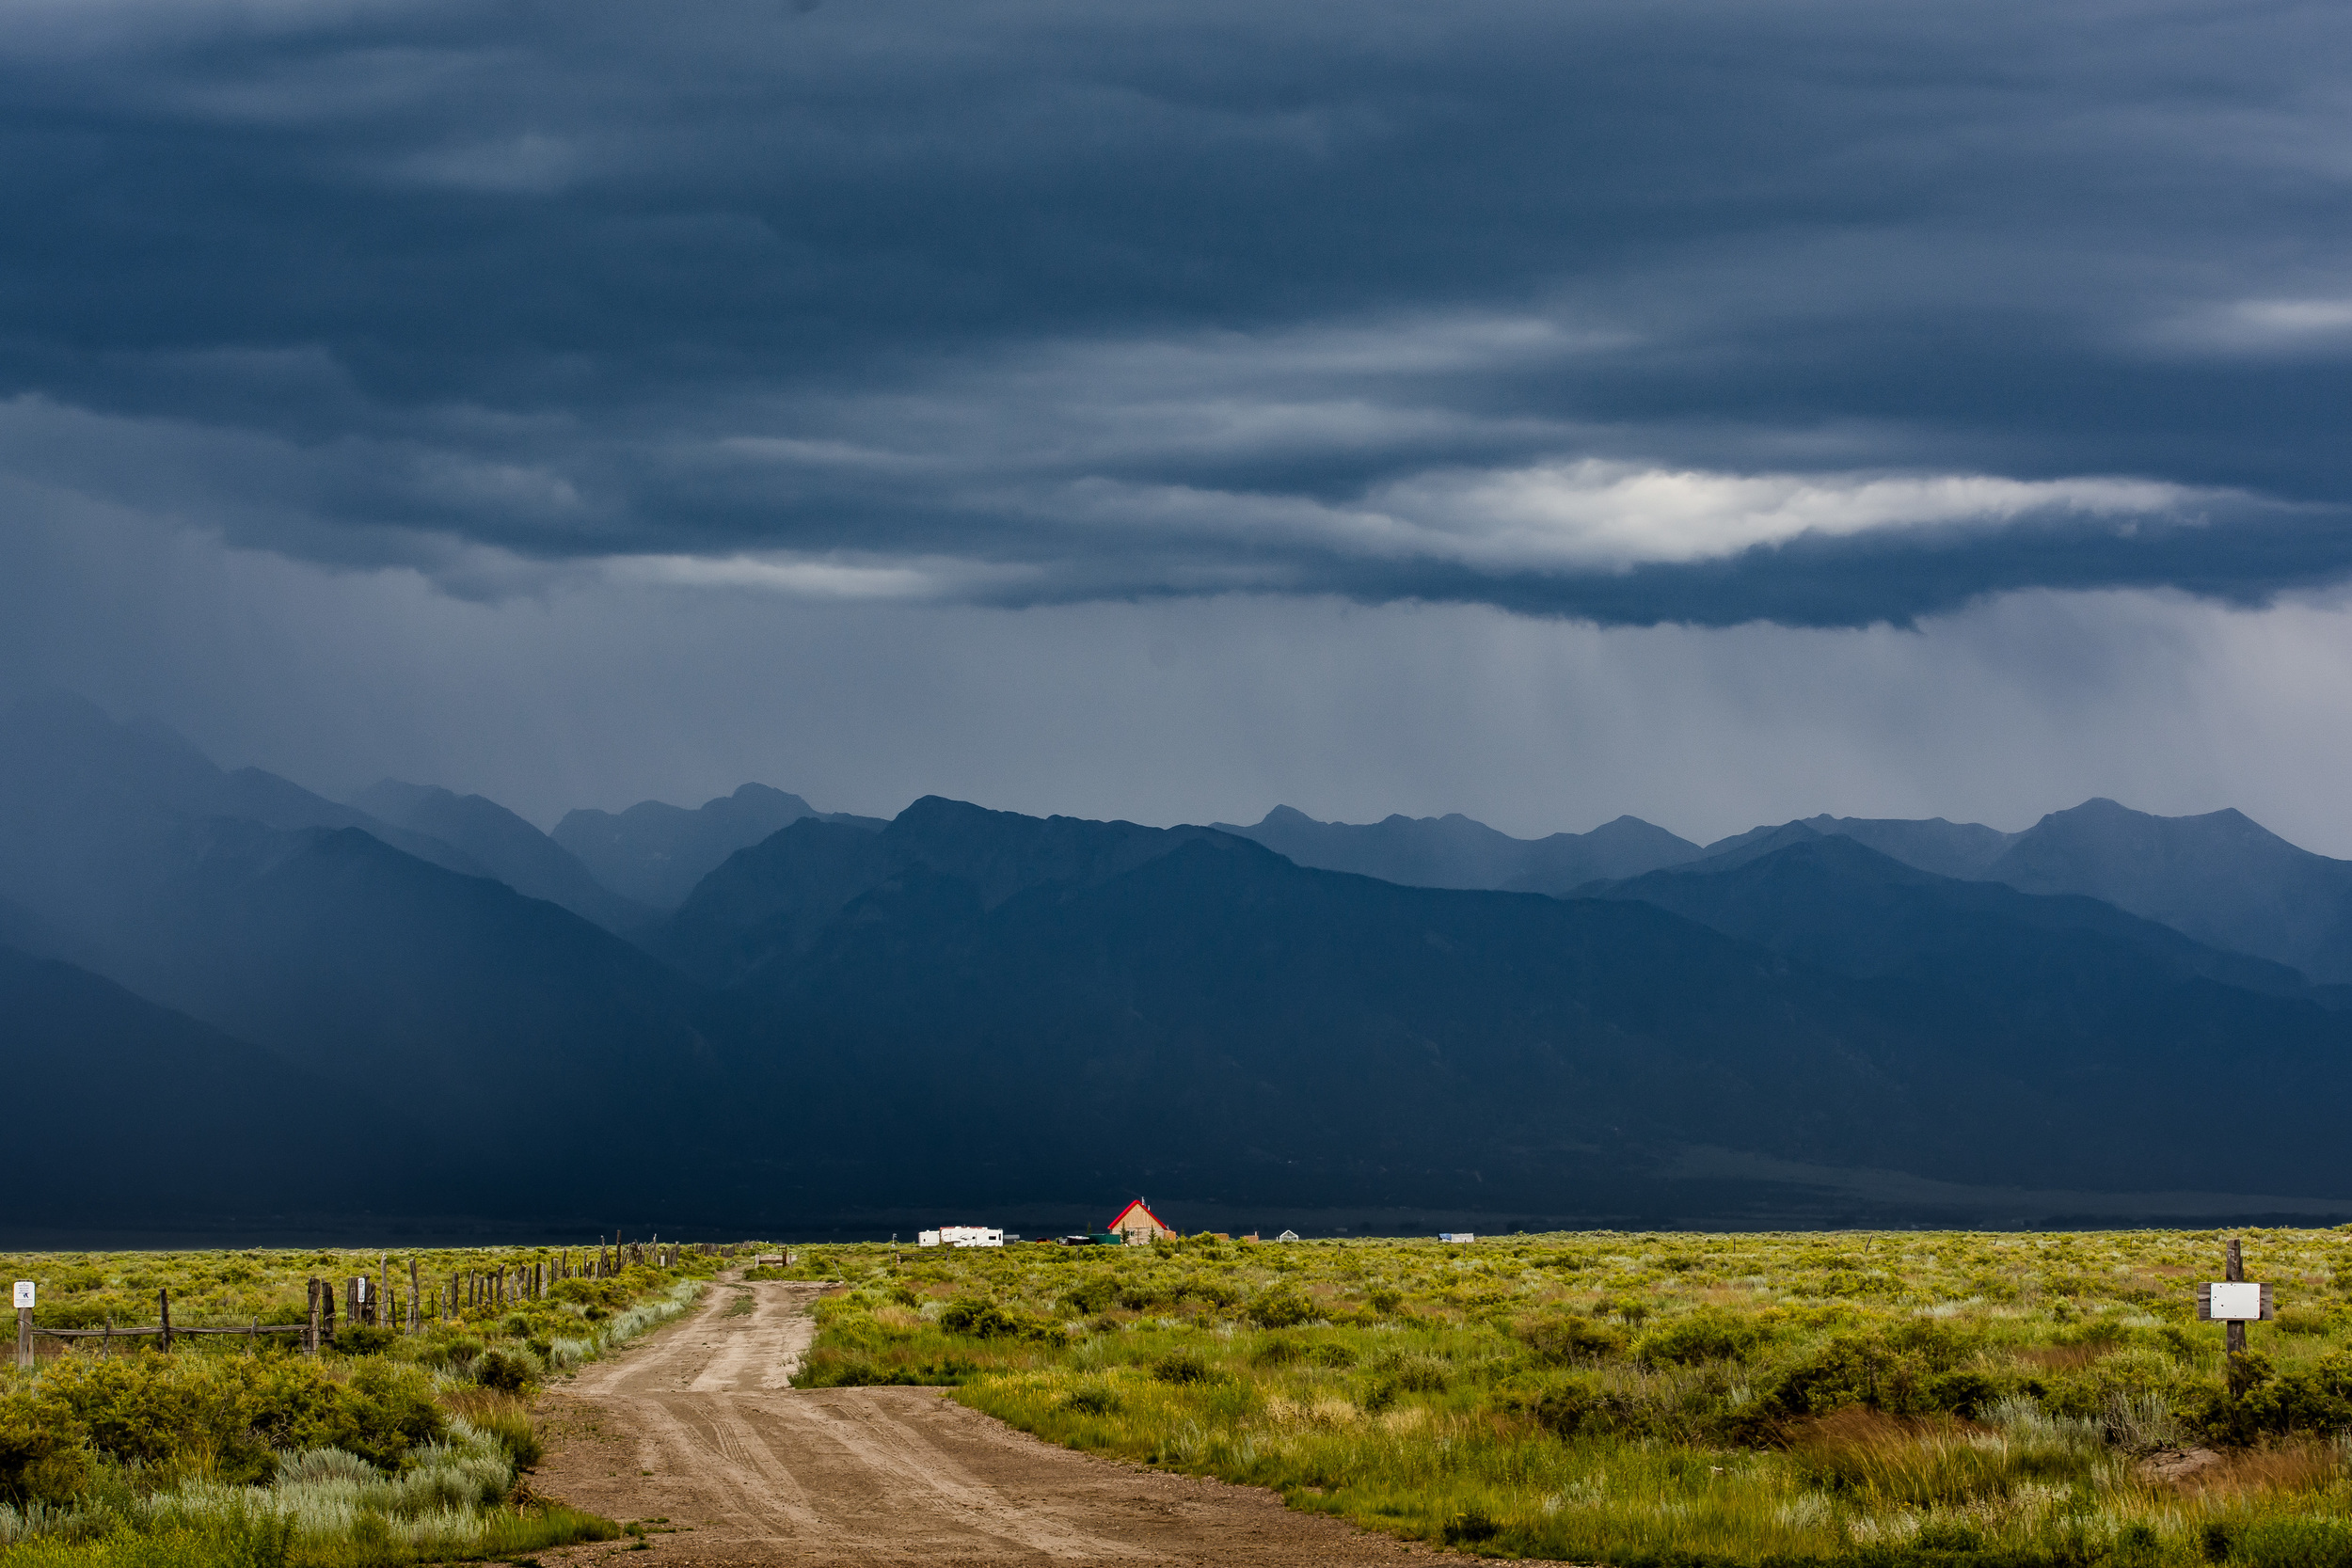 We were flanked by storms as we drove between two ranges in Southern Colorado heading to Santa Fe. We pulled off west of the Sand Dunes National Park to shoot this little scene. Amazing light.